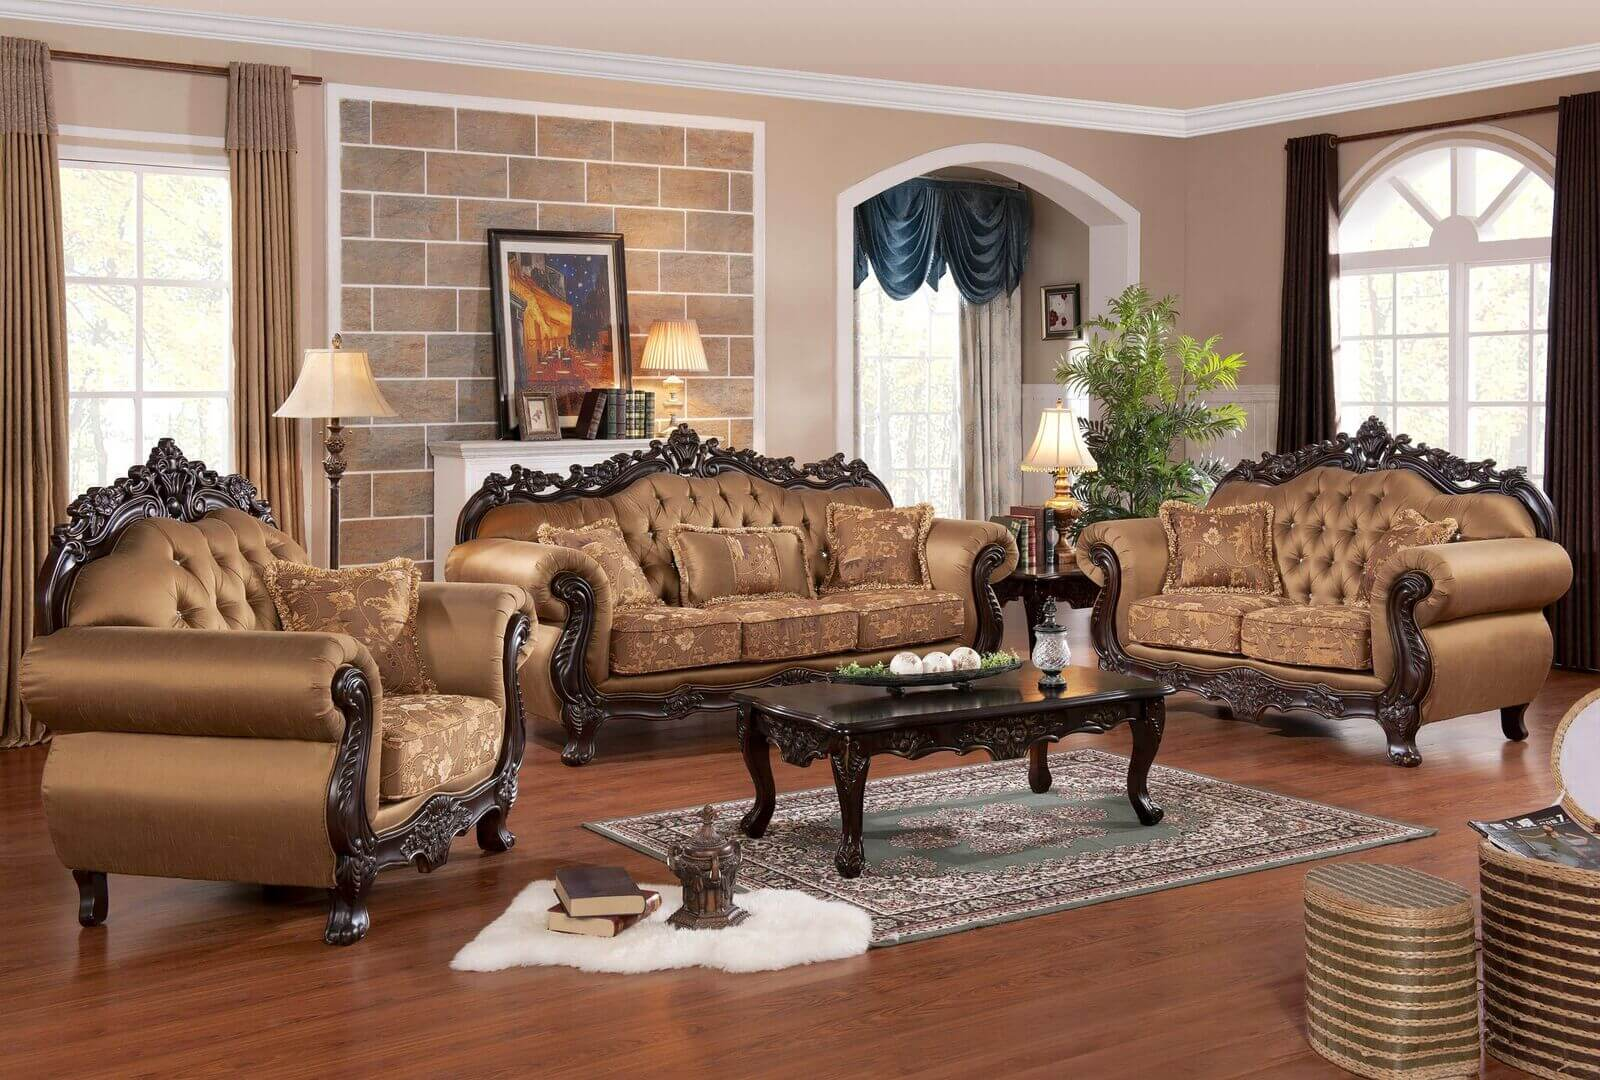 Attirant Sharon 3 Pc Living Room Set